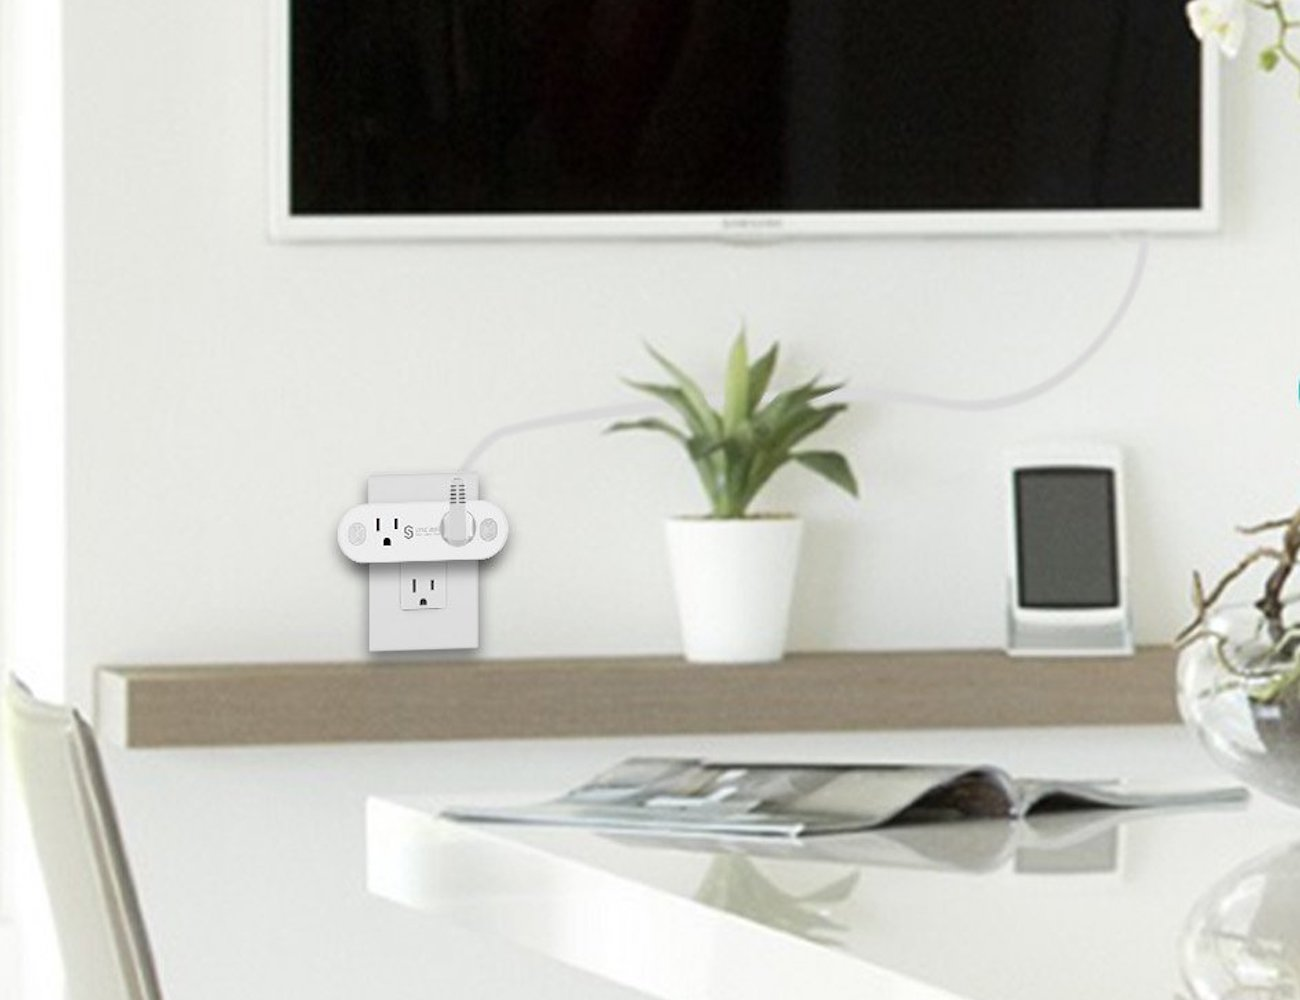 Syncwire Mini Wi-Fi Smart Plug